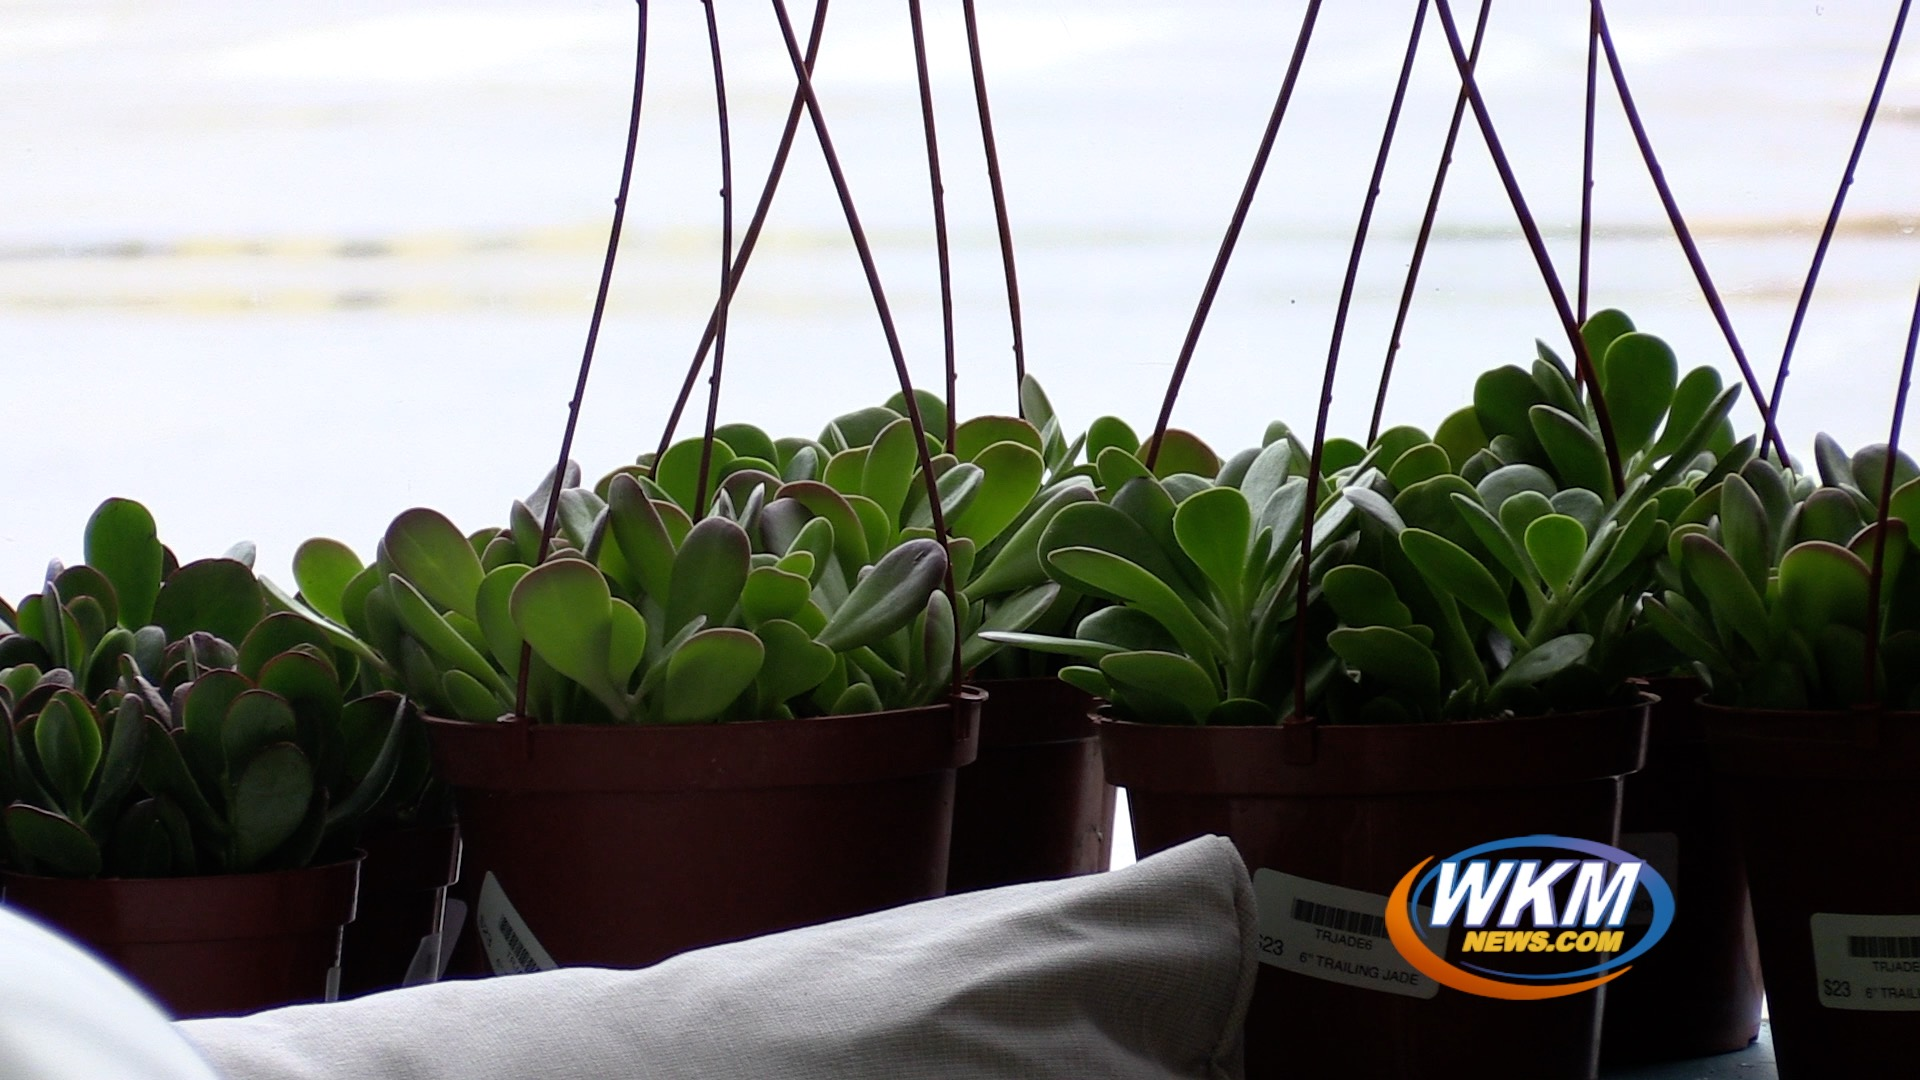 New Downtown Business To Fill Houseplant Needs